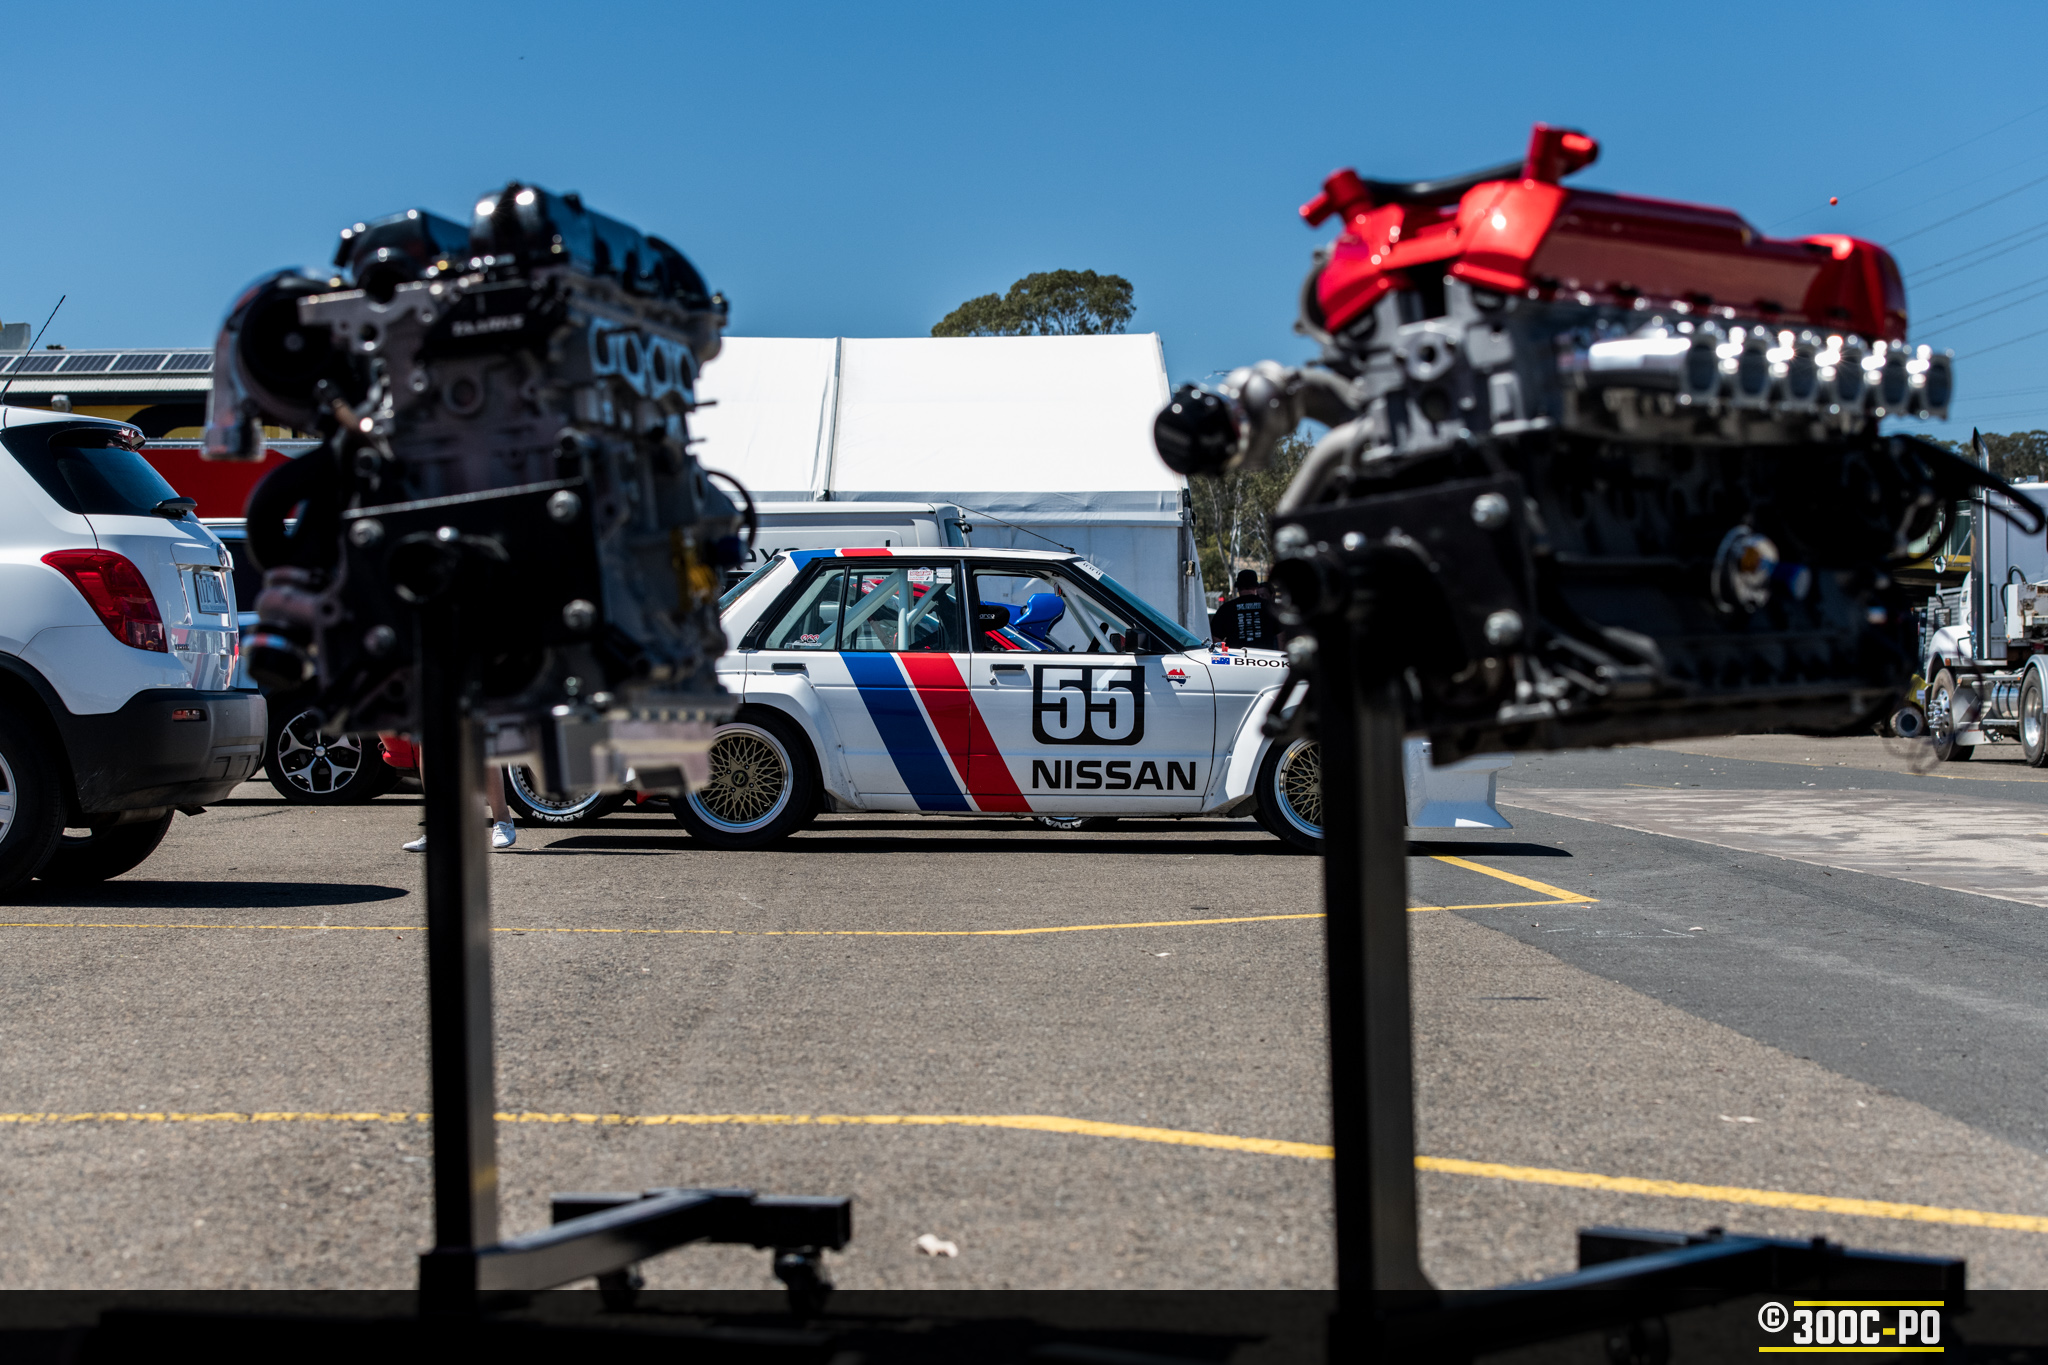 2017-10-12 - WTAC 2017 Test Day 025